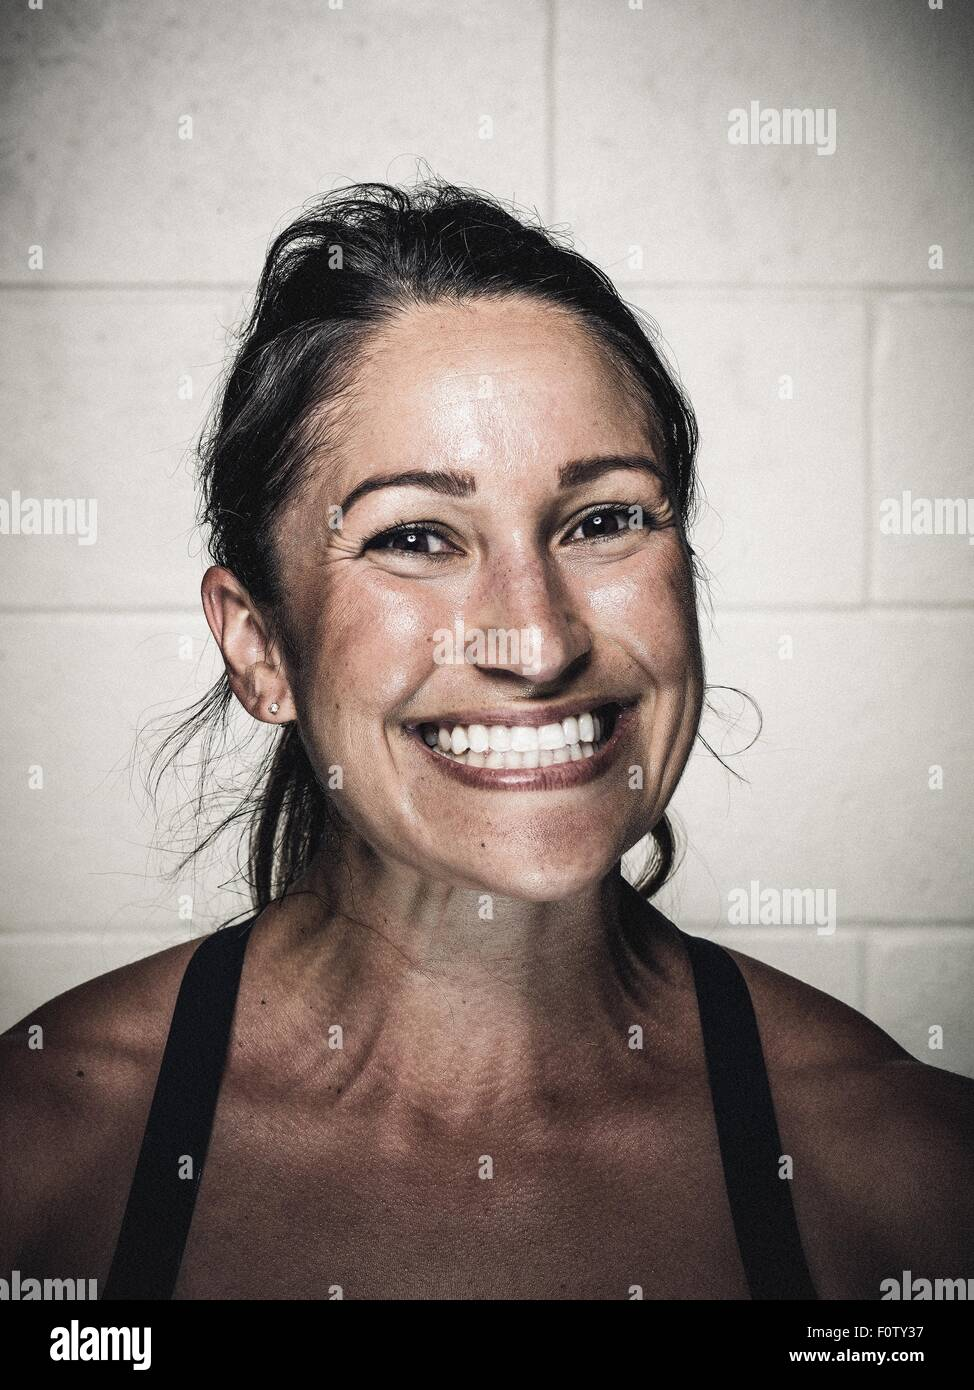 Portrait of a young woman after workout - Stock Image